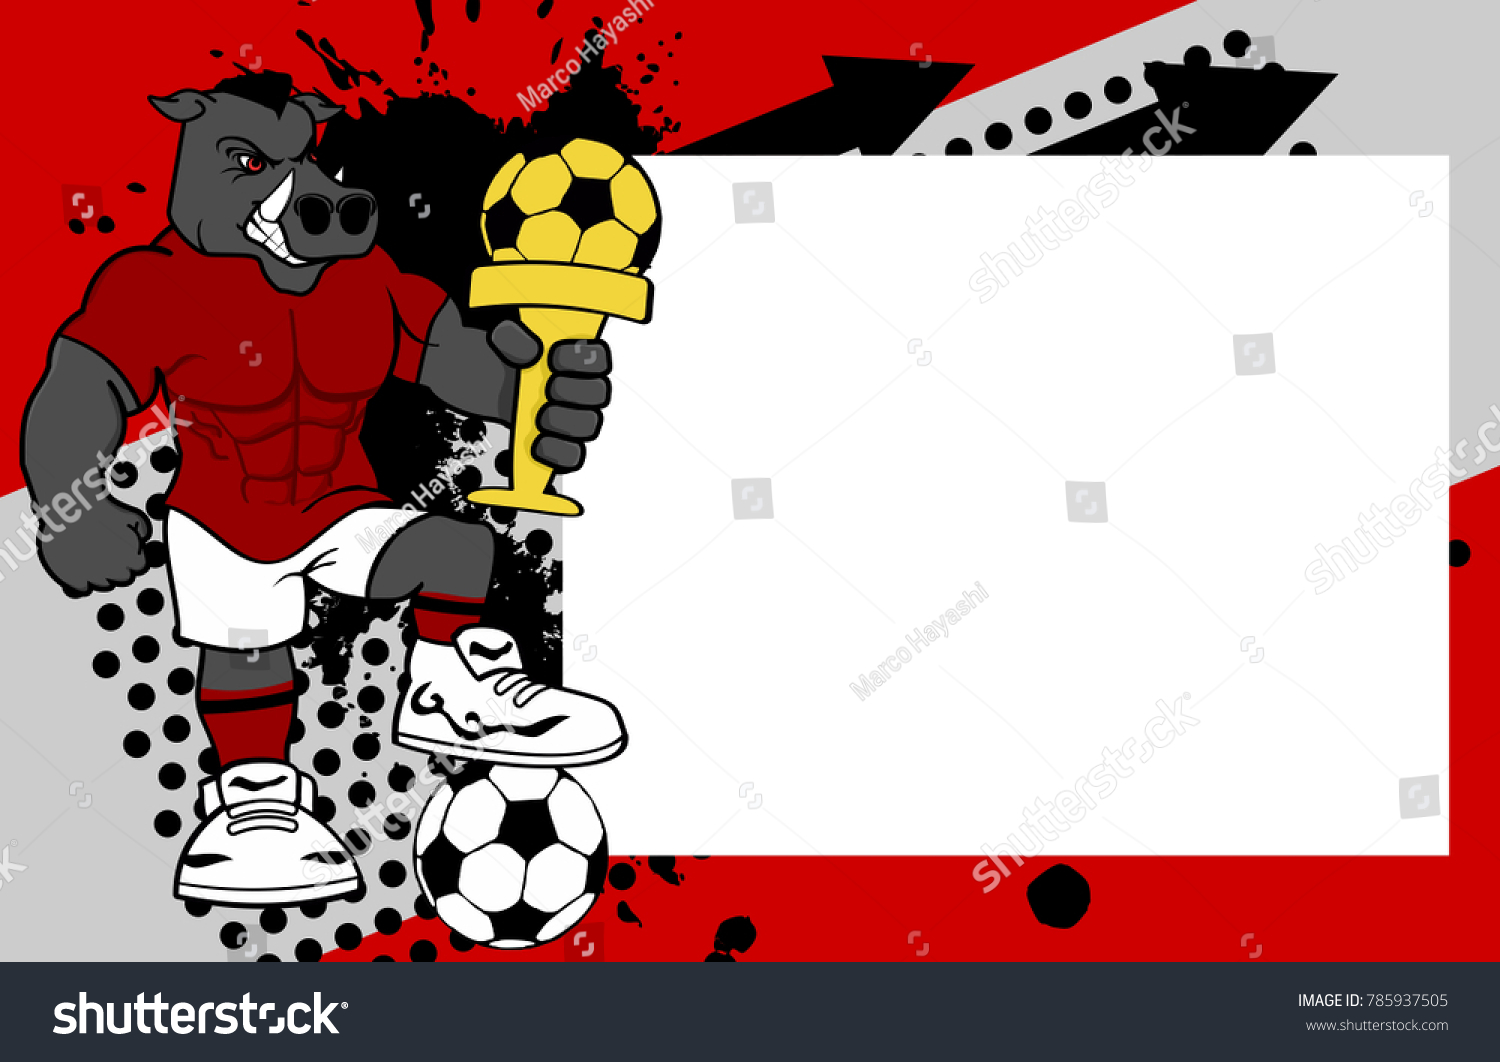 Strong sporty wild pig futbol soccer stock vector 785937505 strong sporty wild pig futbol soccer player cartoon picture frame background in vector format jeuxipadfo Images